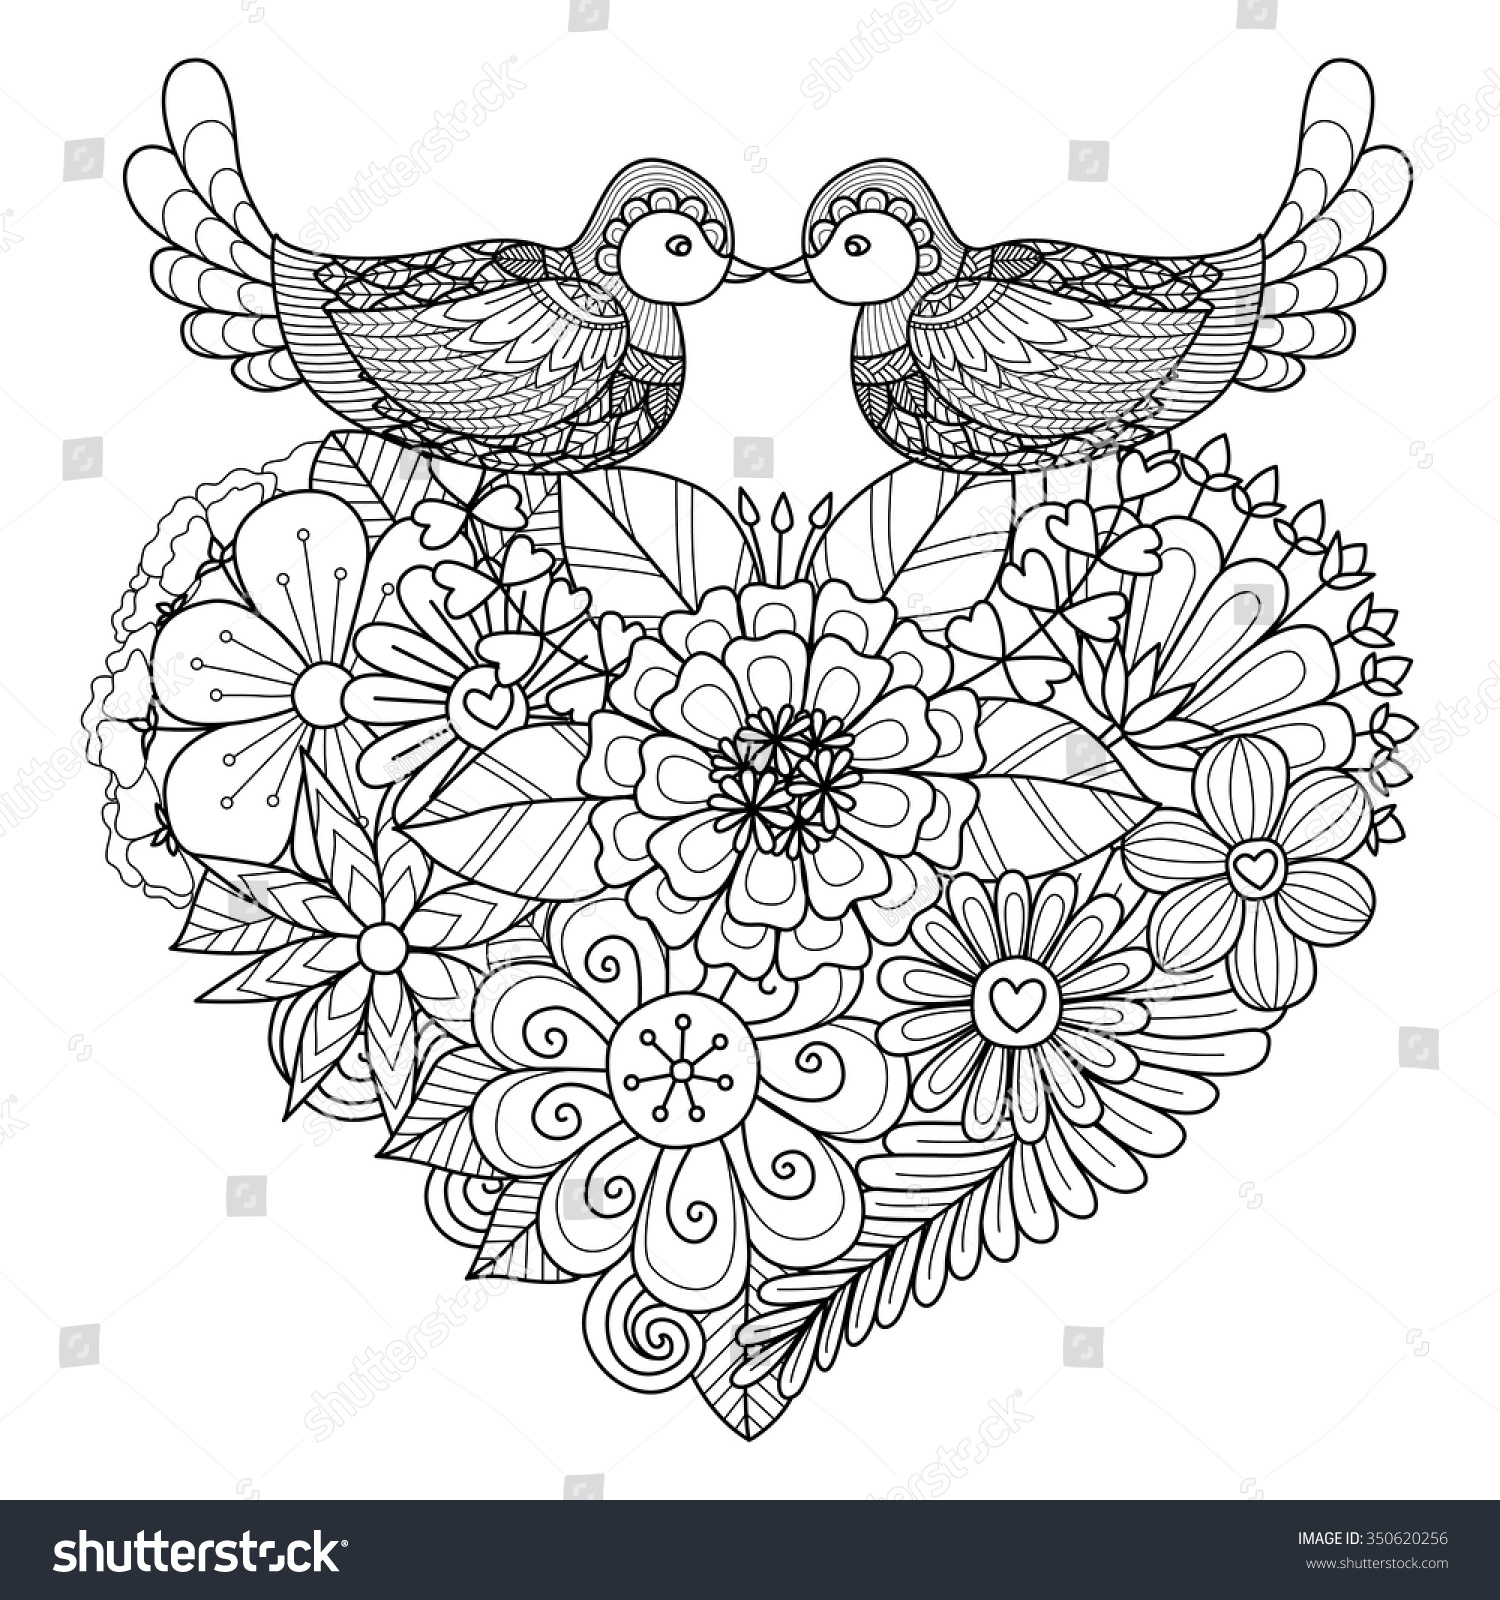 birds kissing on floral heart shape stock vector 350620256